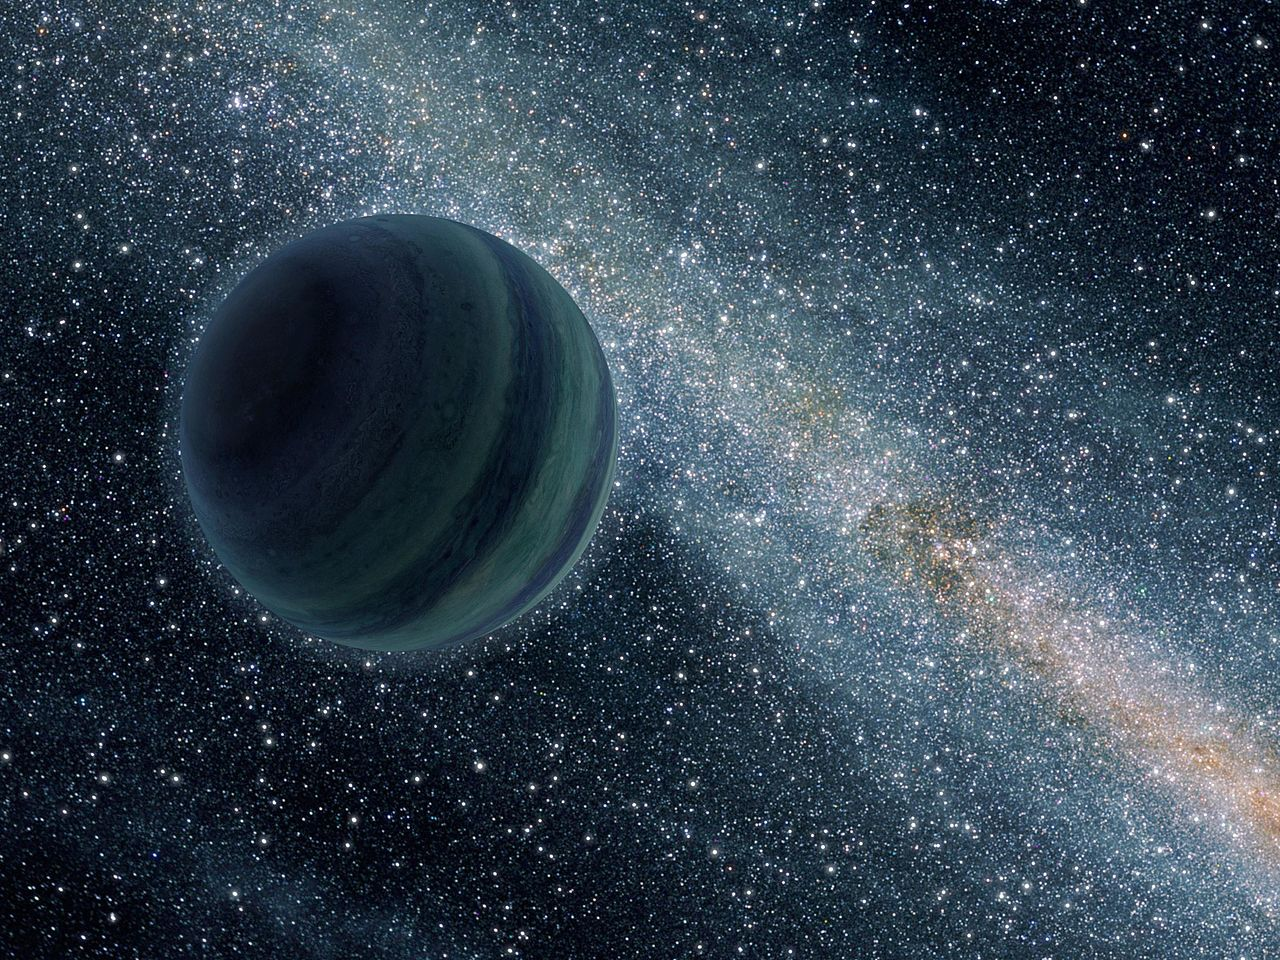 Real pics of the planets in our solar system